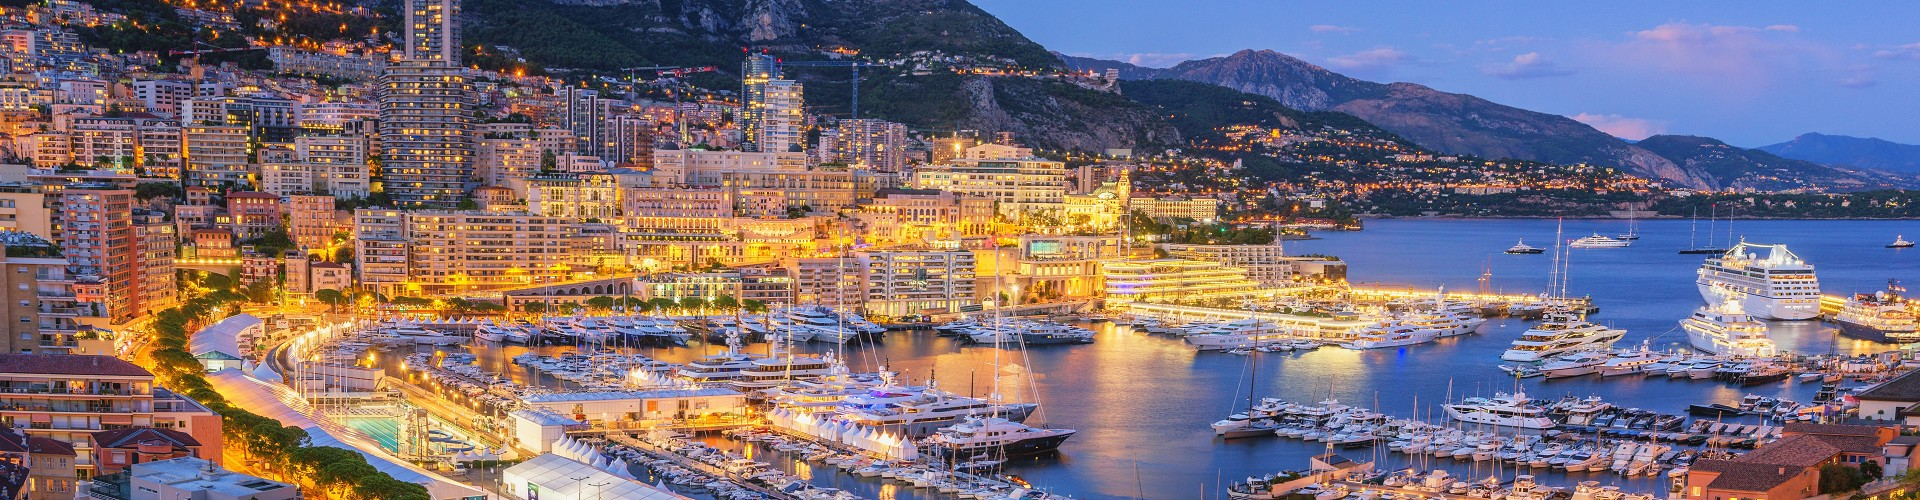 Transfer Tours from Genoa to Santa Margherita | Transfer Tours from Genoa to Monaco